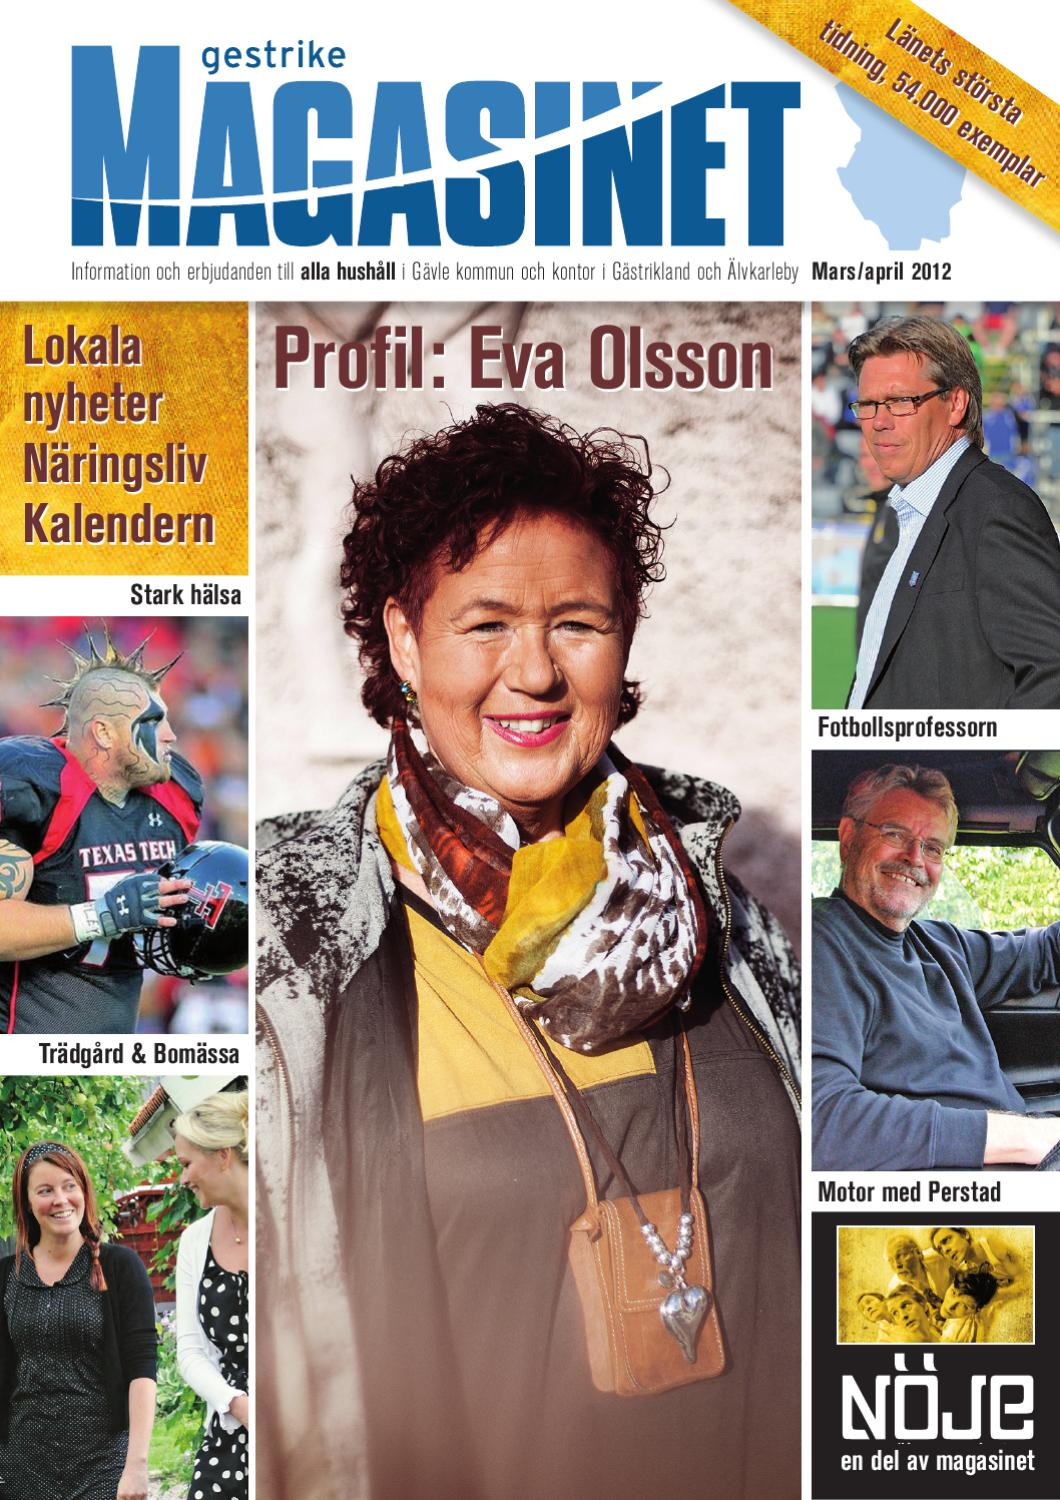 Gestrike magasinet nr 3 2012 by gestrike media   issuu